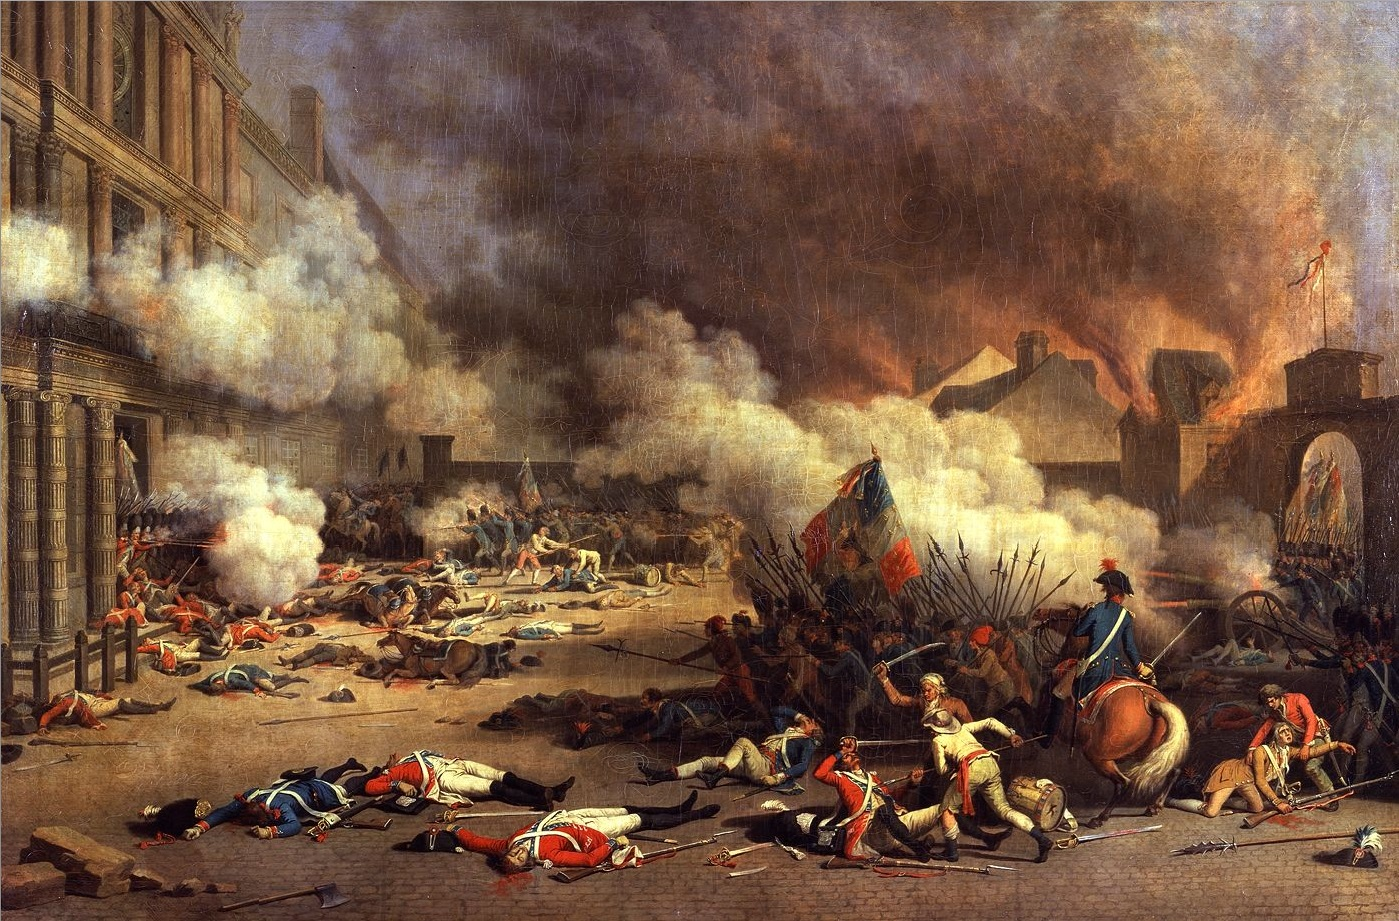 an analysis of the events leading to the french revolution between 1789 and 1799